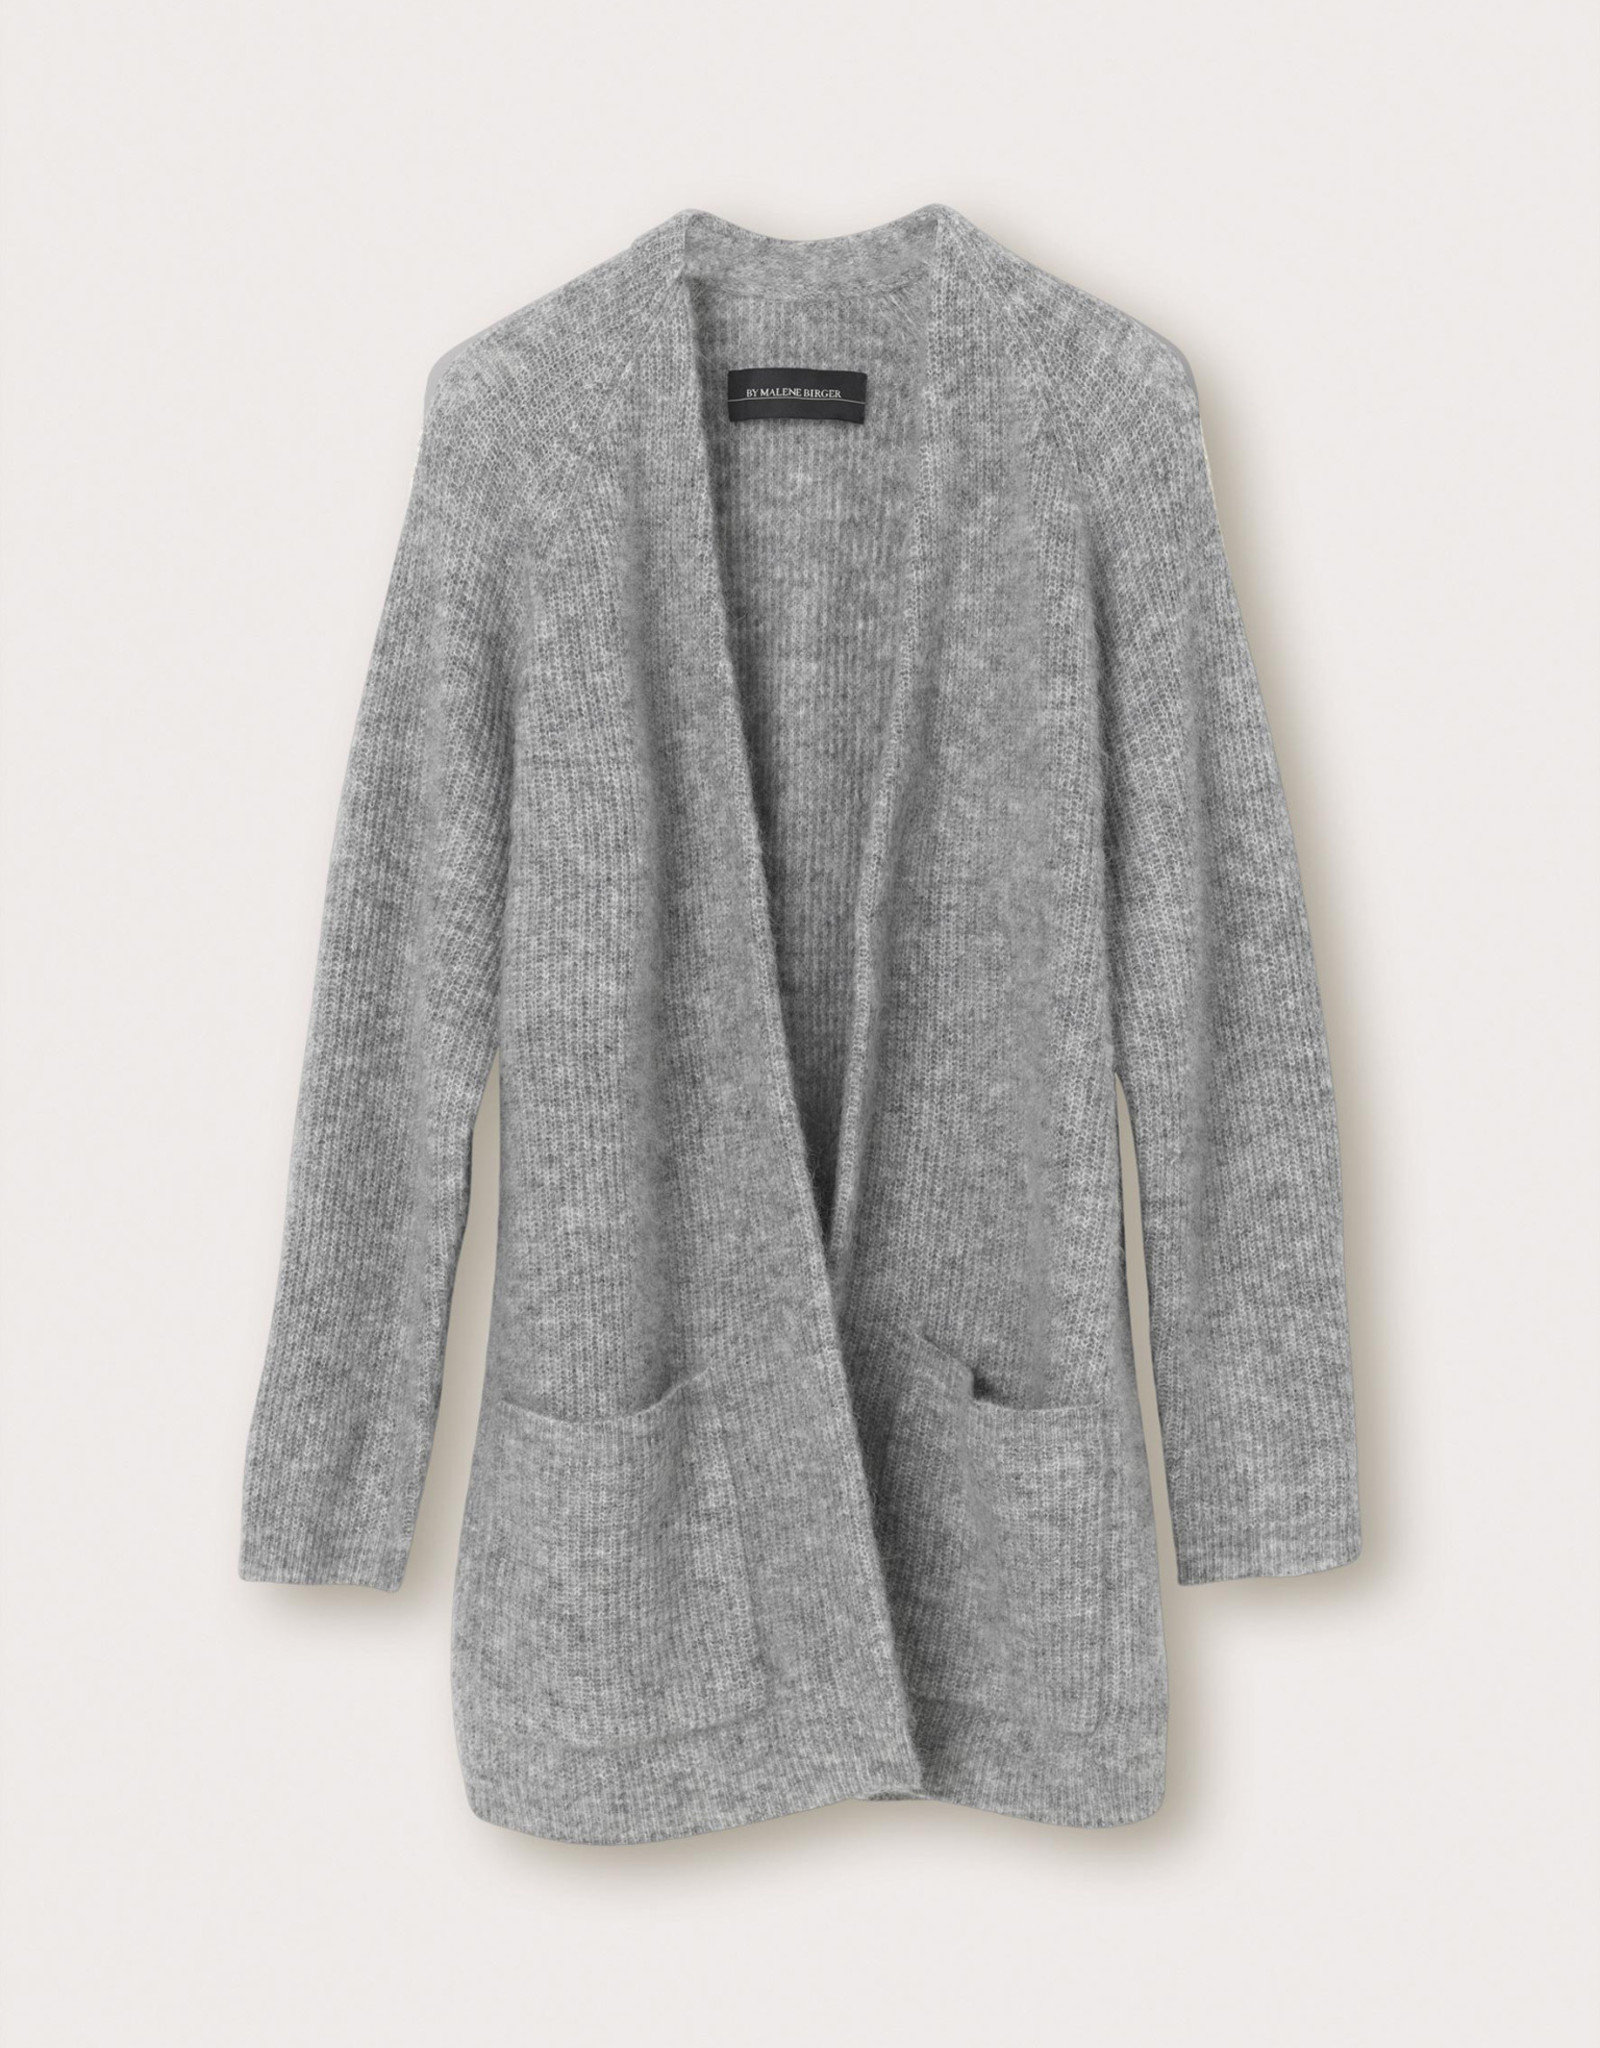 BY MALENE BIRGER The Belinta Cardigan